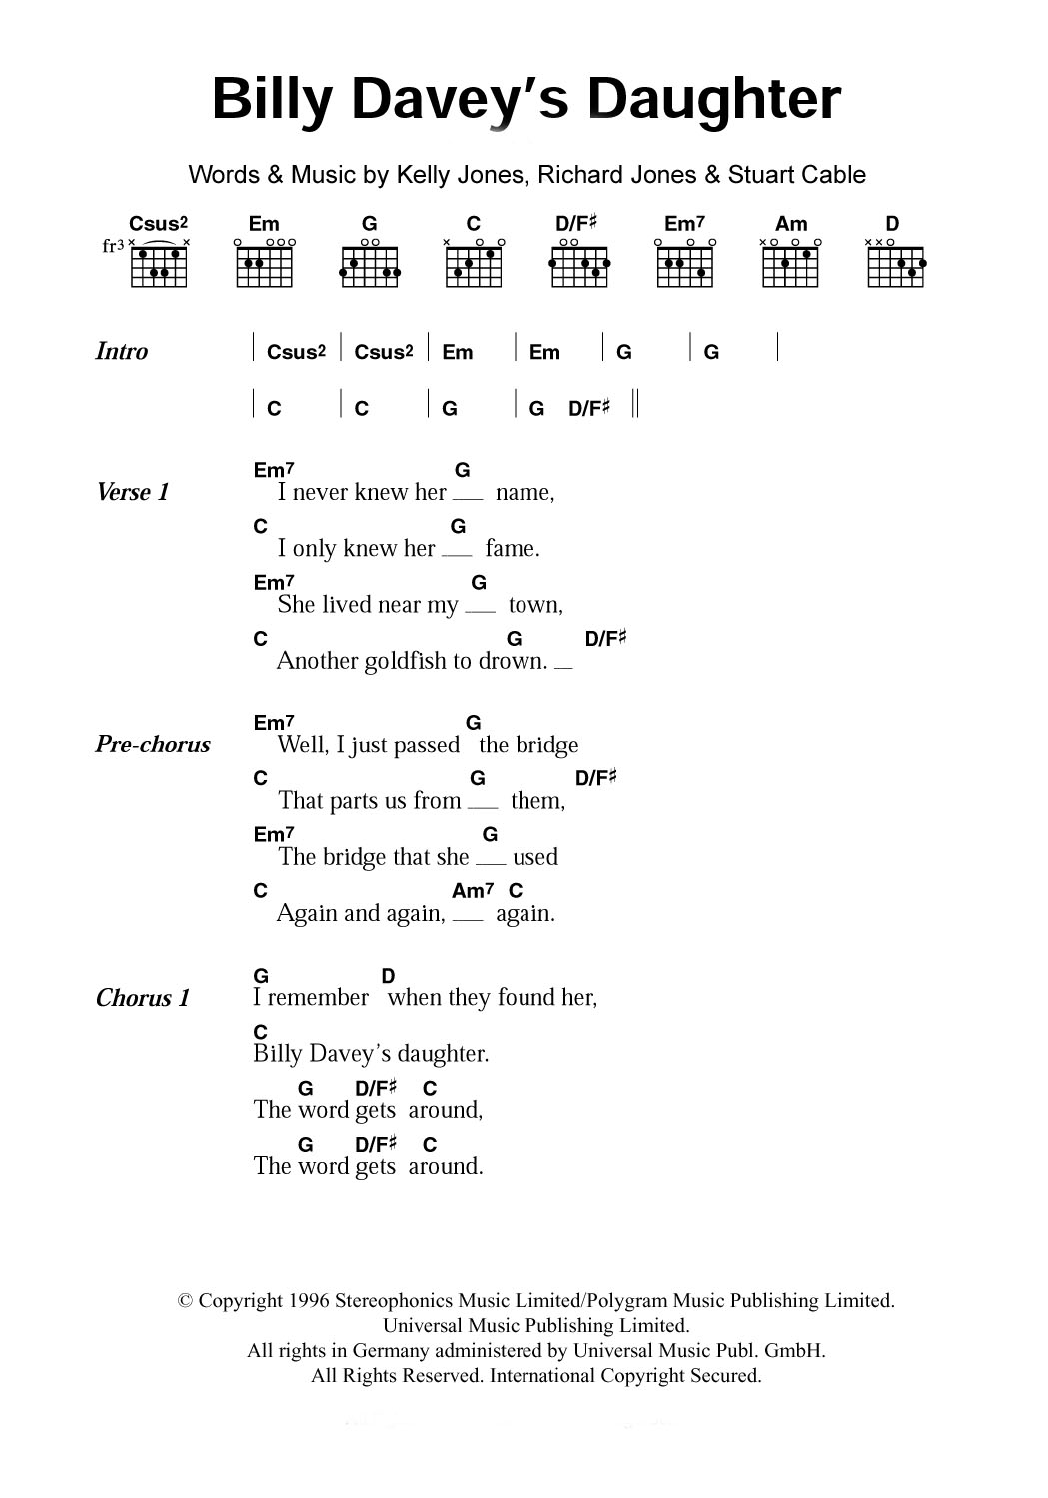 Billy Davey's Daughter by Stereophonics   Guitar Chords/Lyrics ...